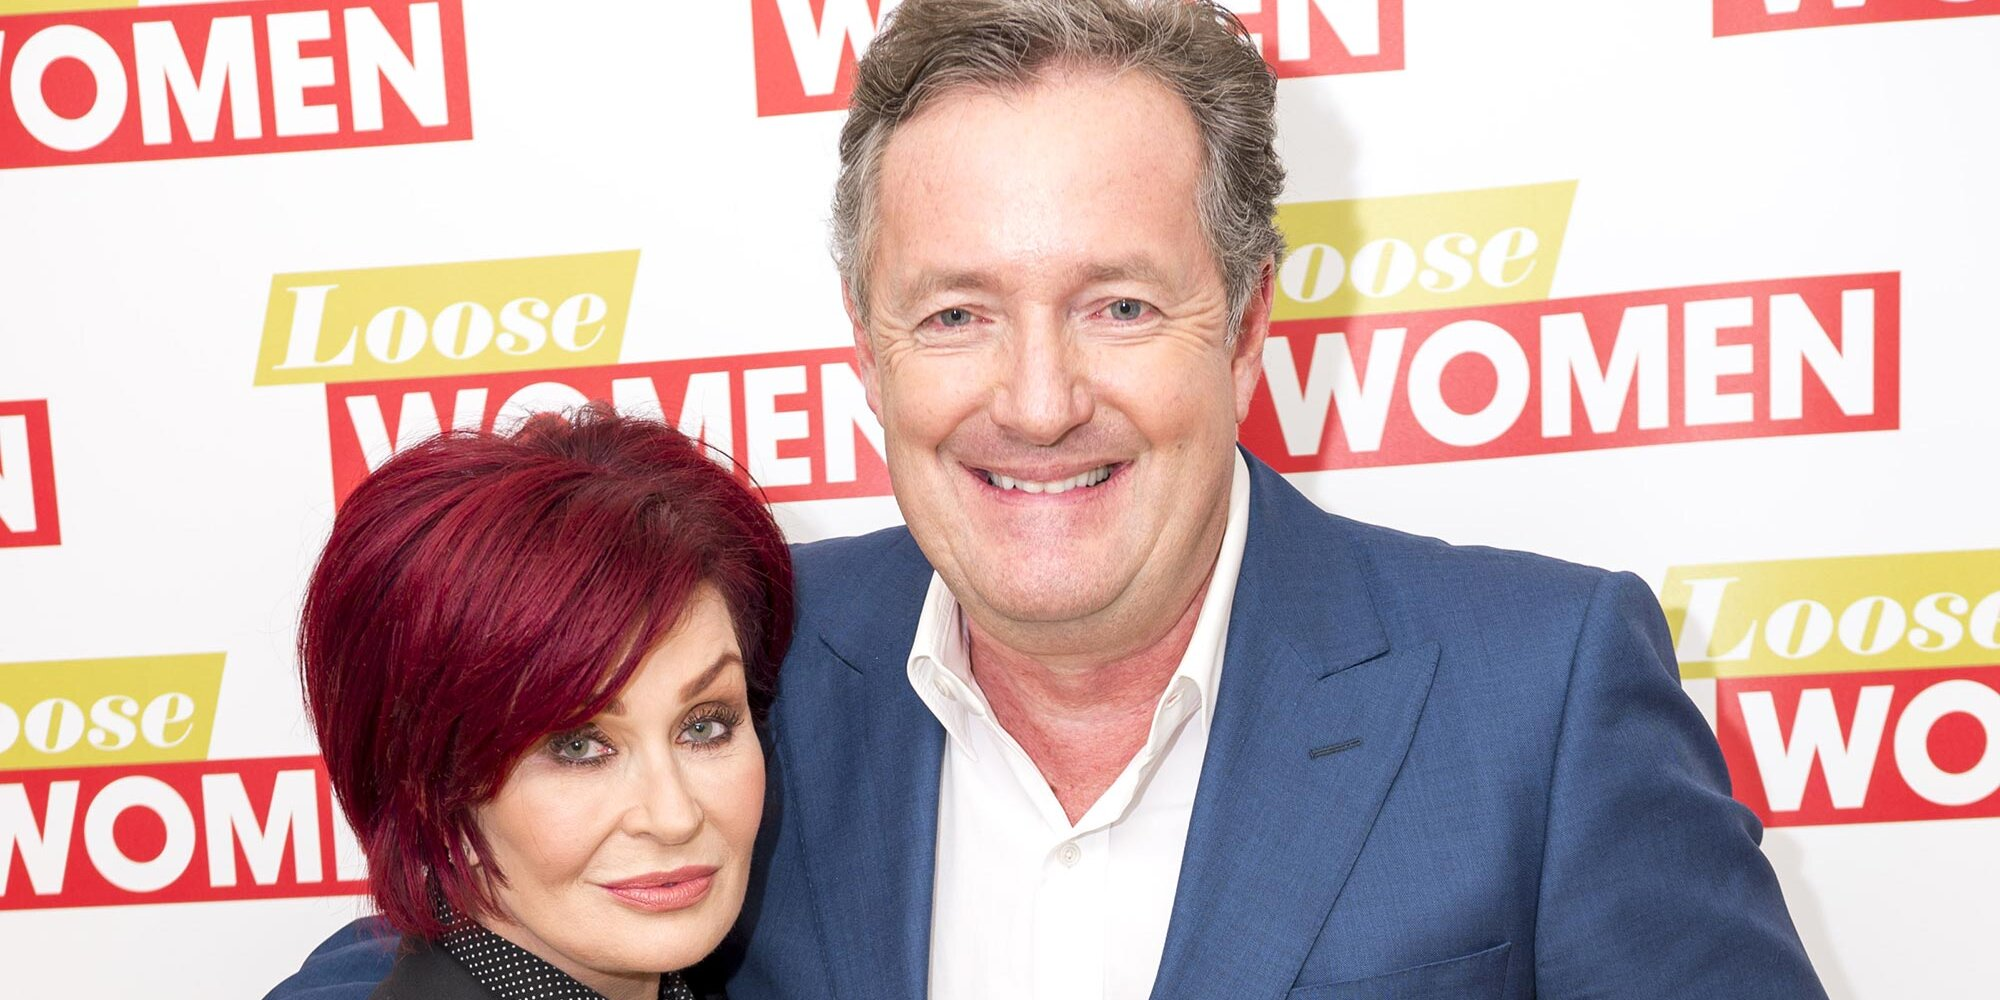 Piers Morgan says Sharon Osbourne was entitled to defend him 'without being deemed a racist'